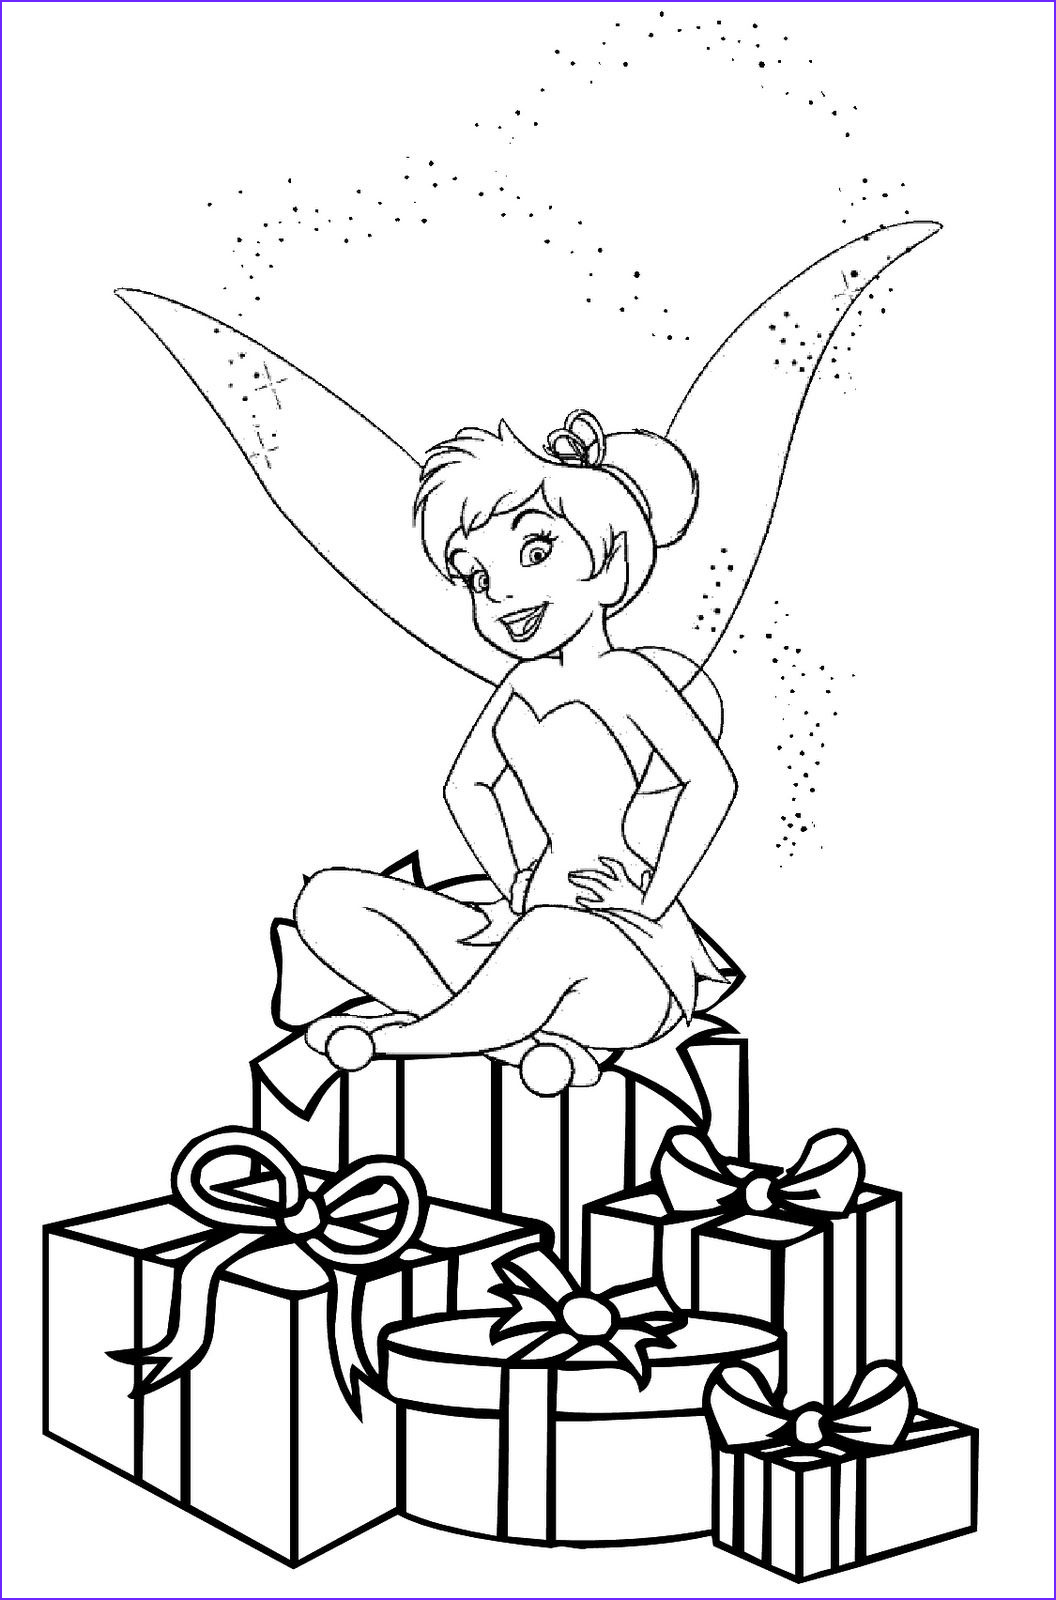 Coloring Pages for Christmas Cool Photos Christmas Coloring Pages